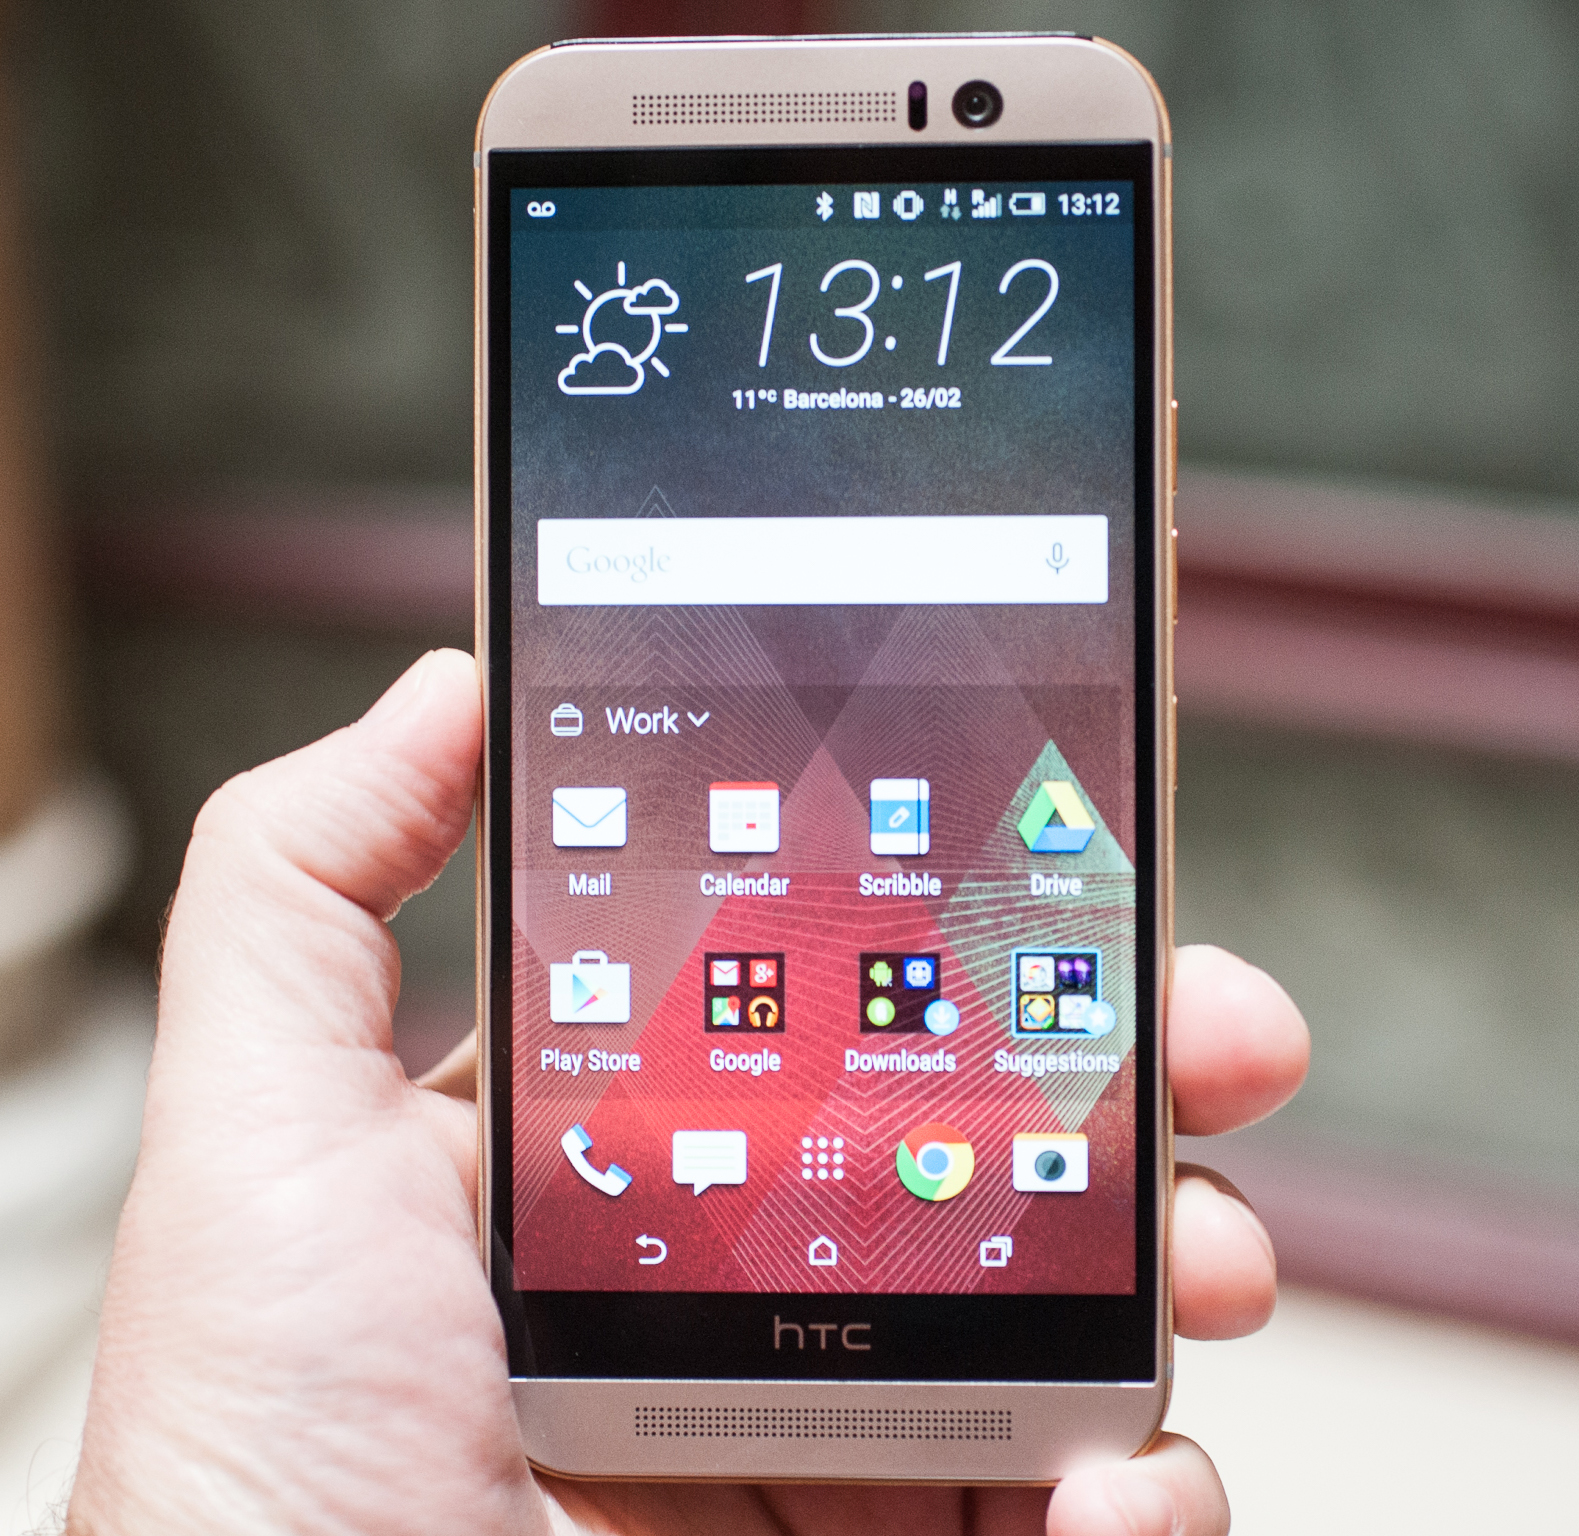 HTC One M9 user manual,HTC One M9 user guide manual,HTC One M9 user manual pdf‎,HTC One M9 user manual guide,HTC One M9 owners manuals online,HTC One M9 user guides, User Guide Manual,User Manual,User Manual Guide,User Manual PDF‎,